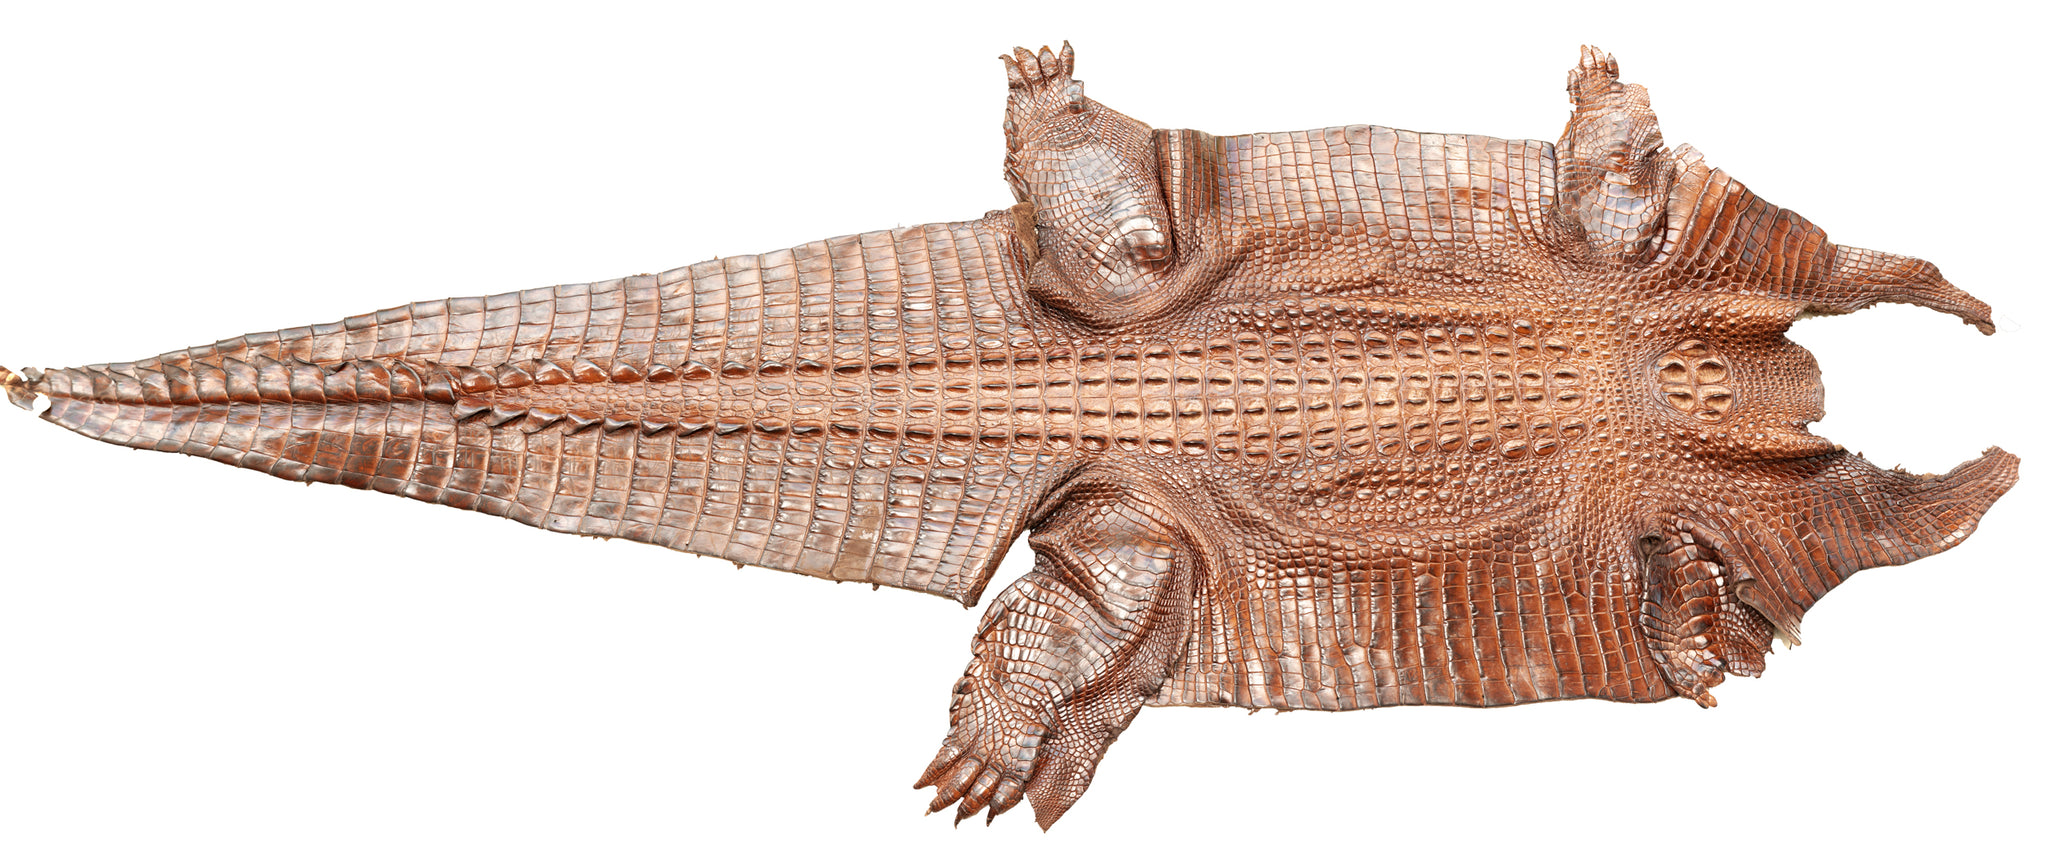 Crocodile Skin Taxidermy